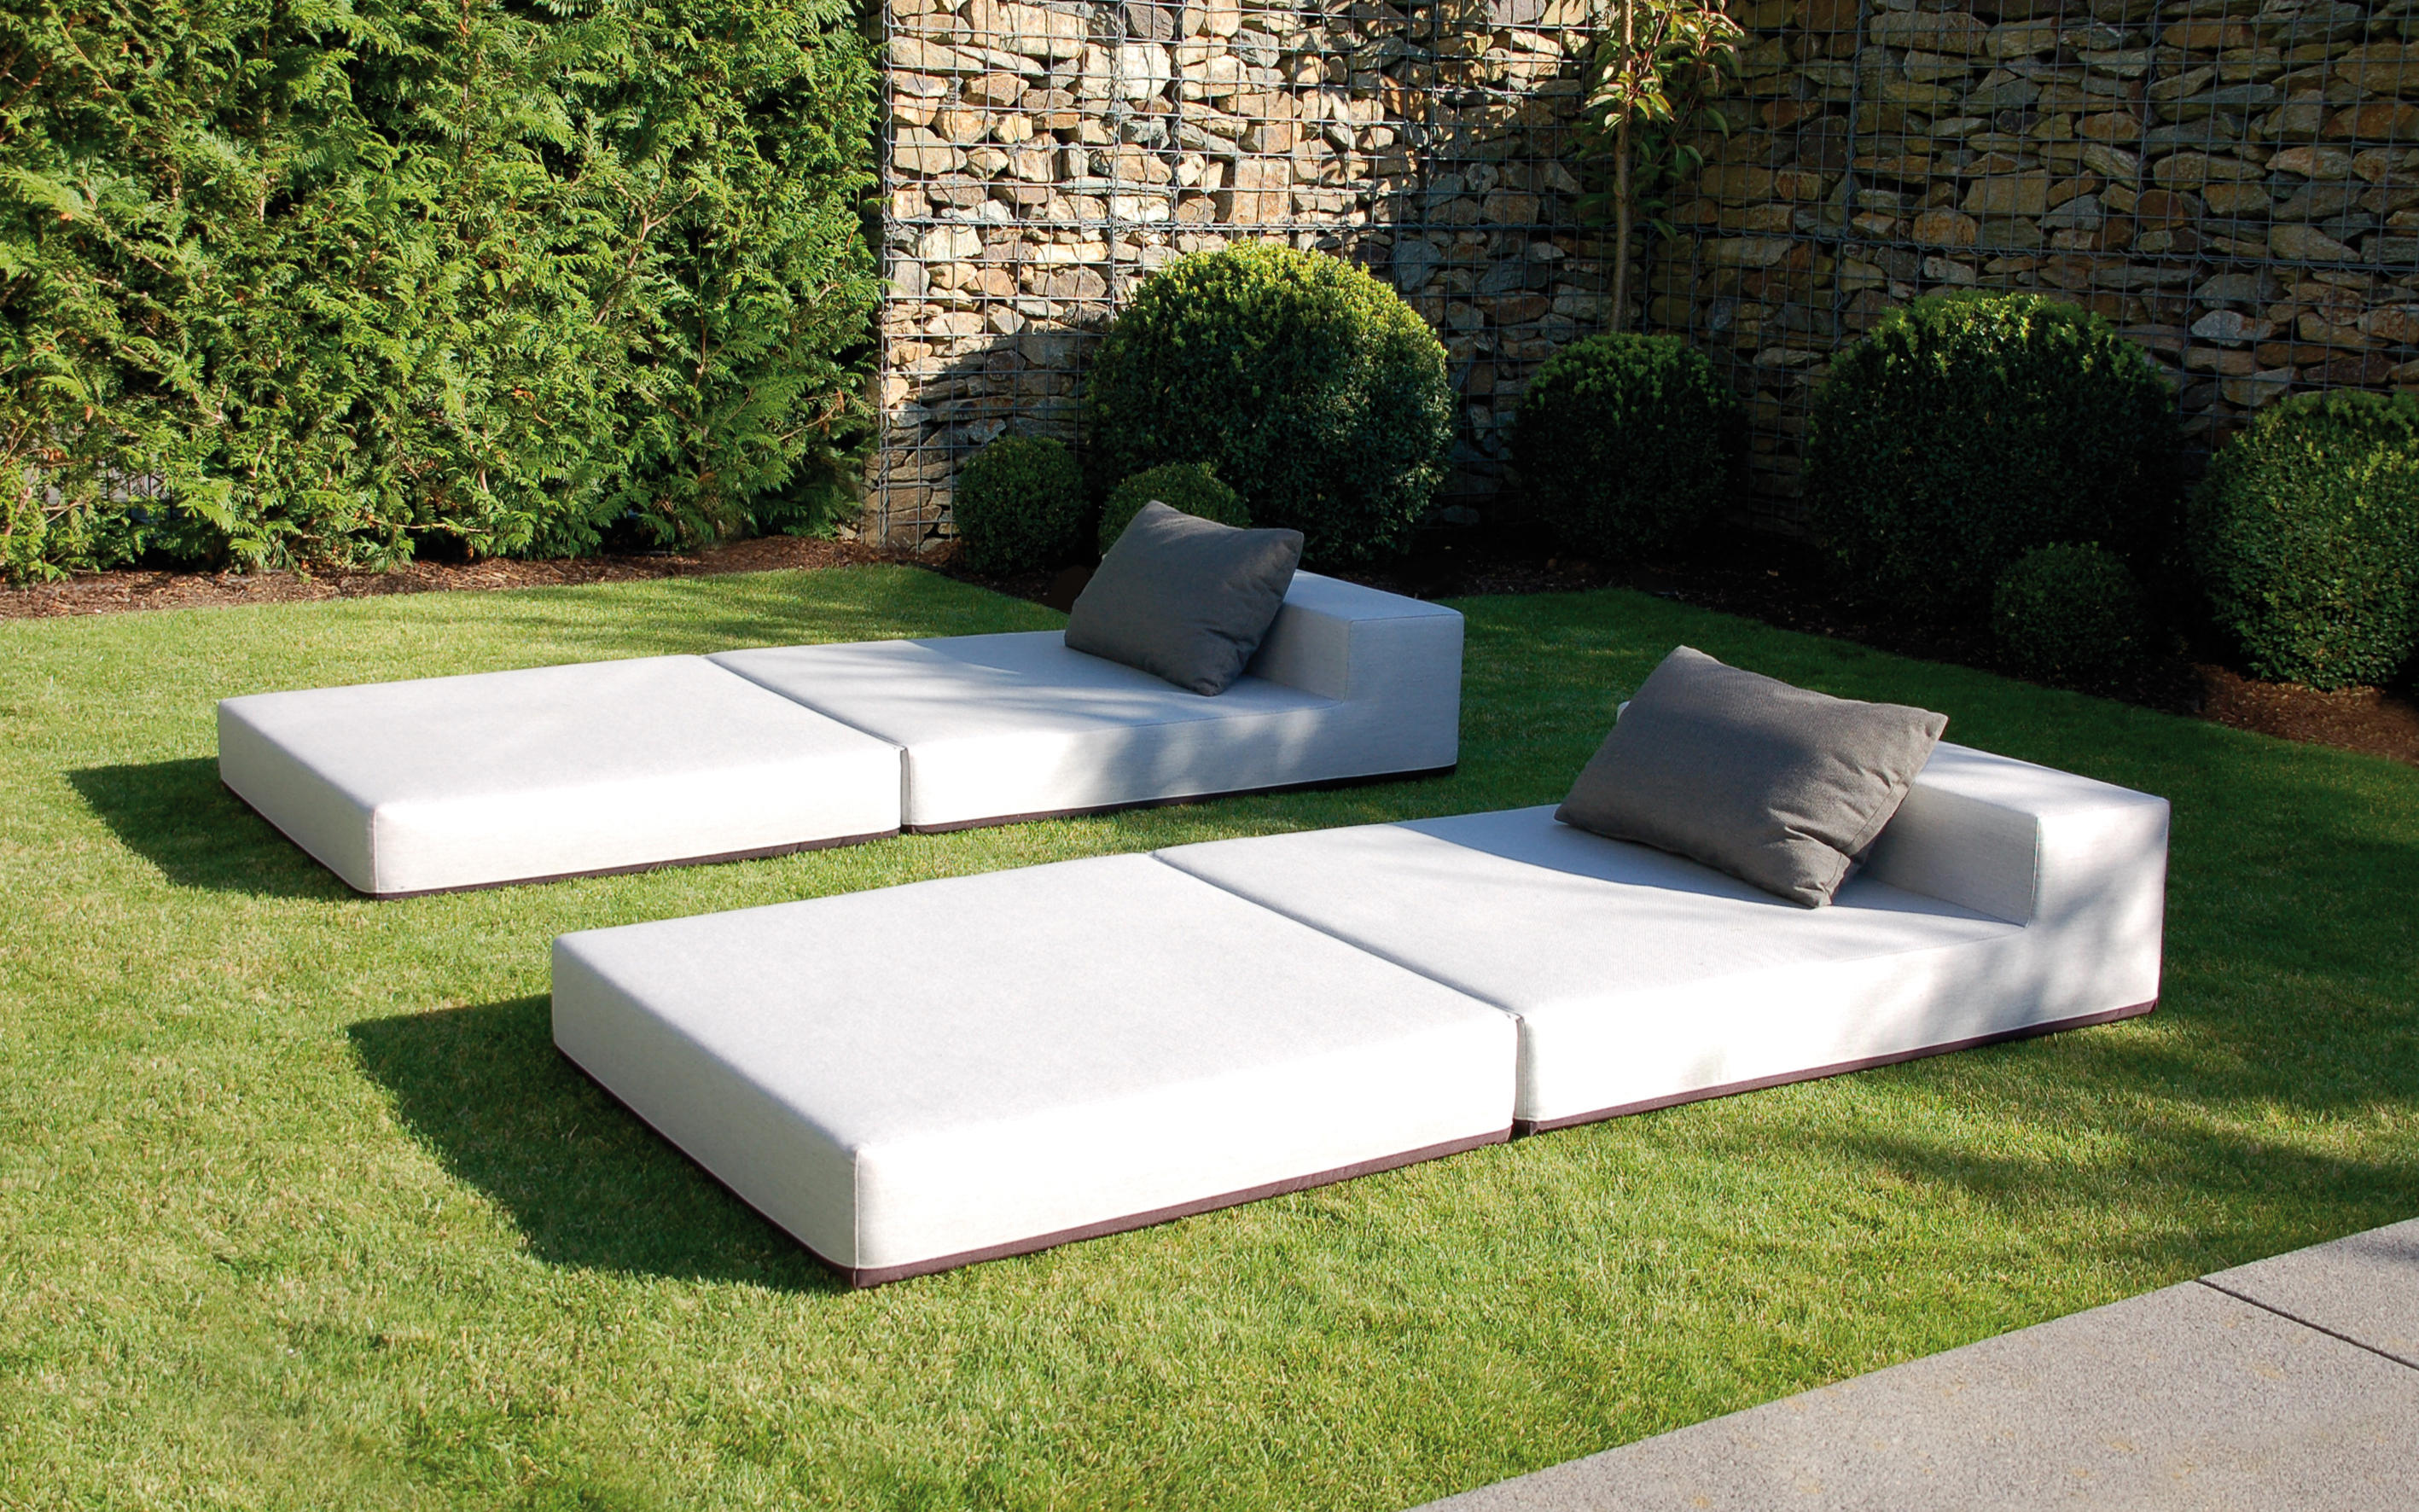 Daybed Outdoor Wetterfest Loopster Daybed Sun Loungers From April Furniture Architonic